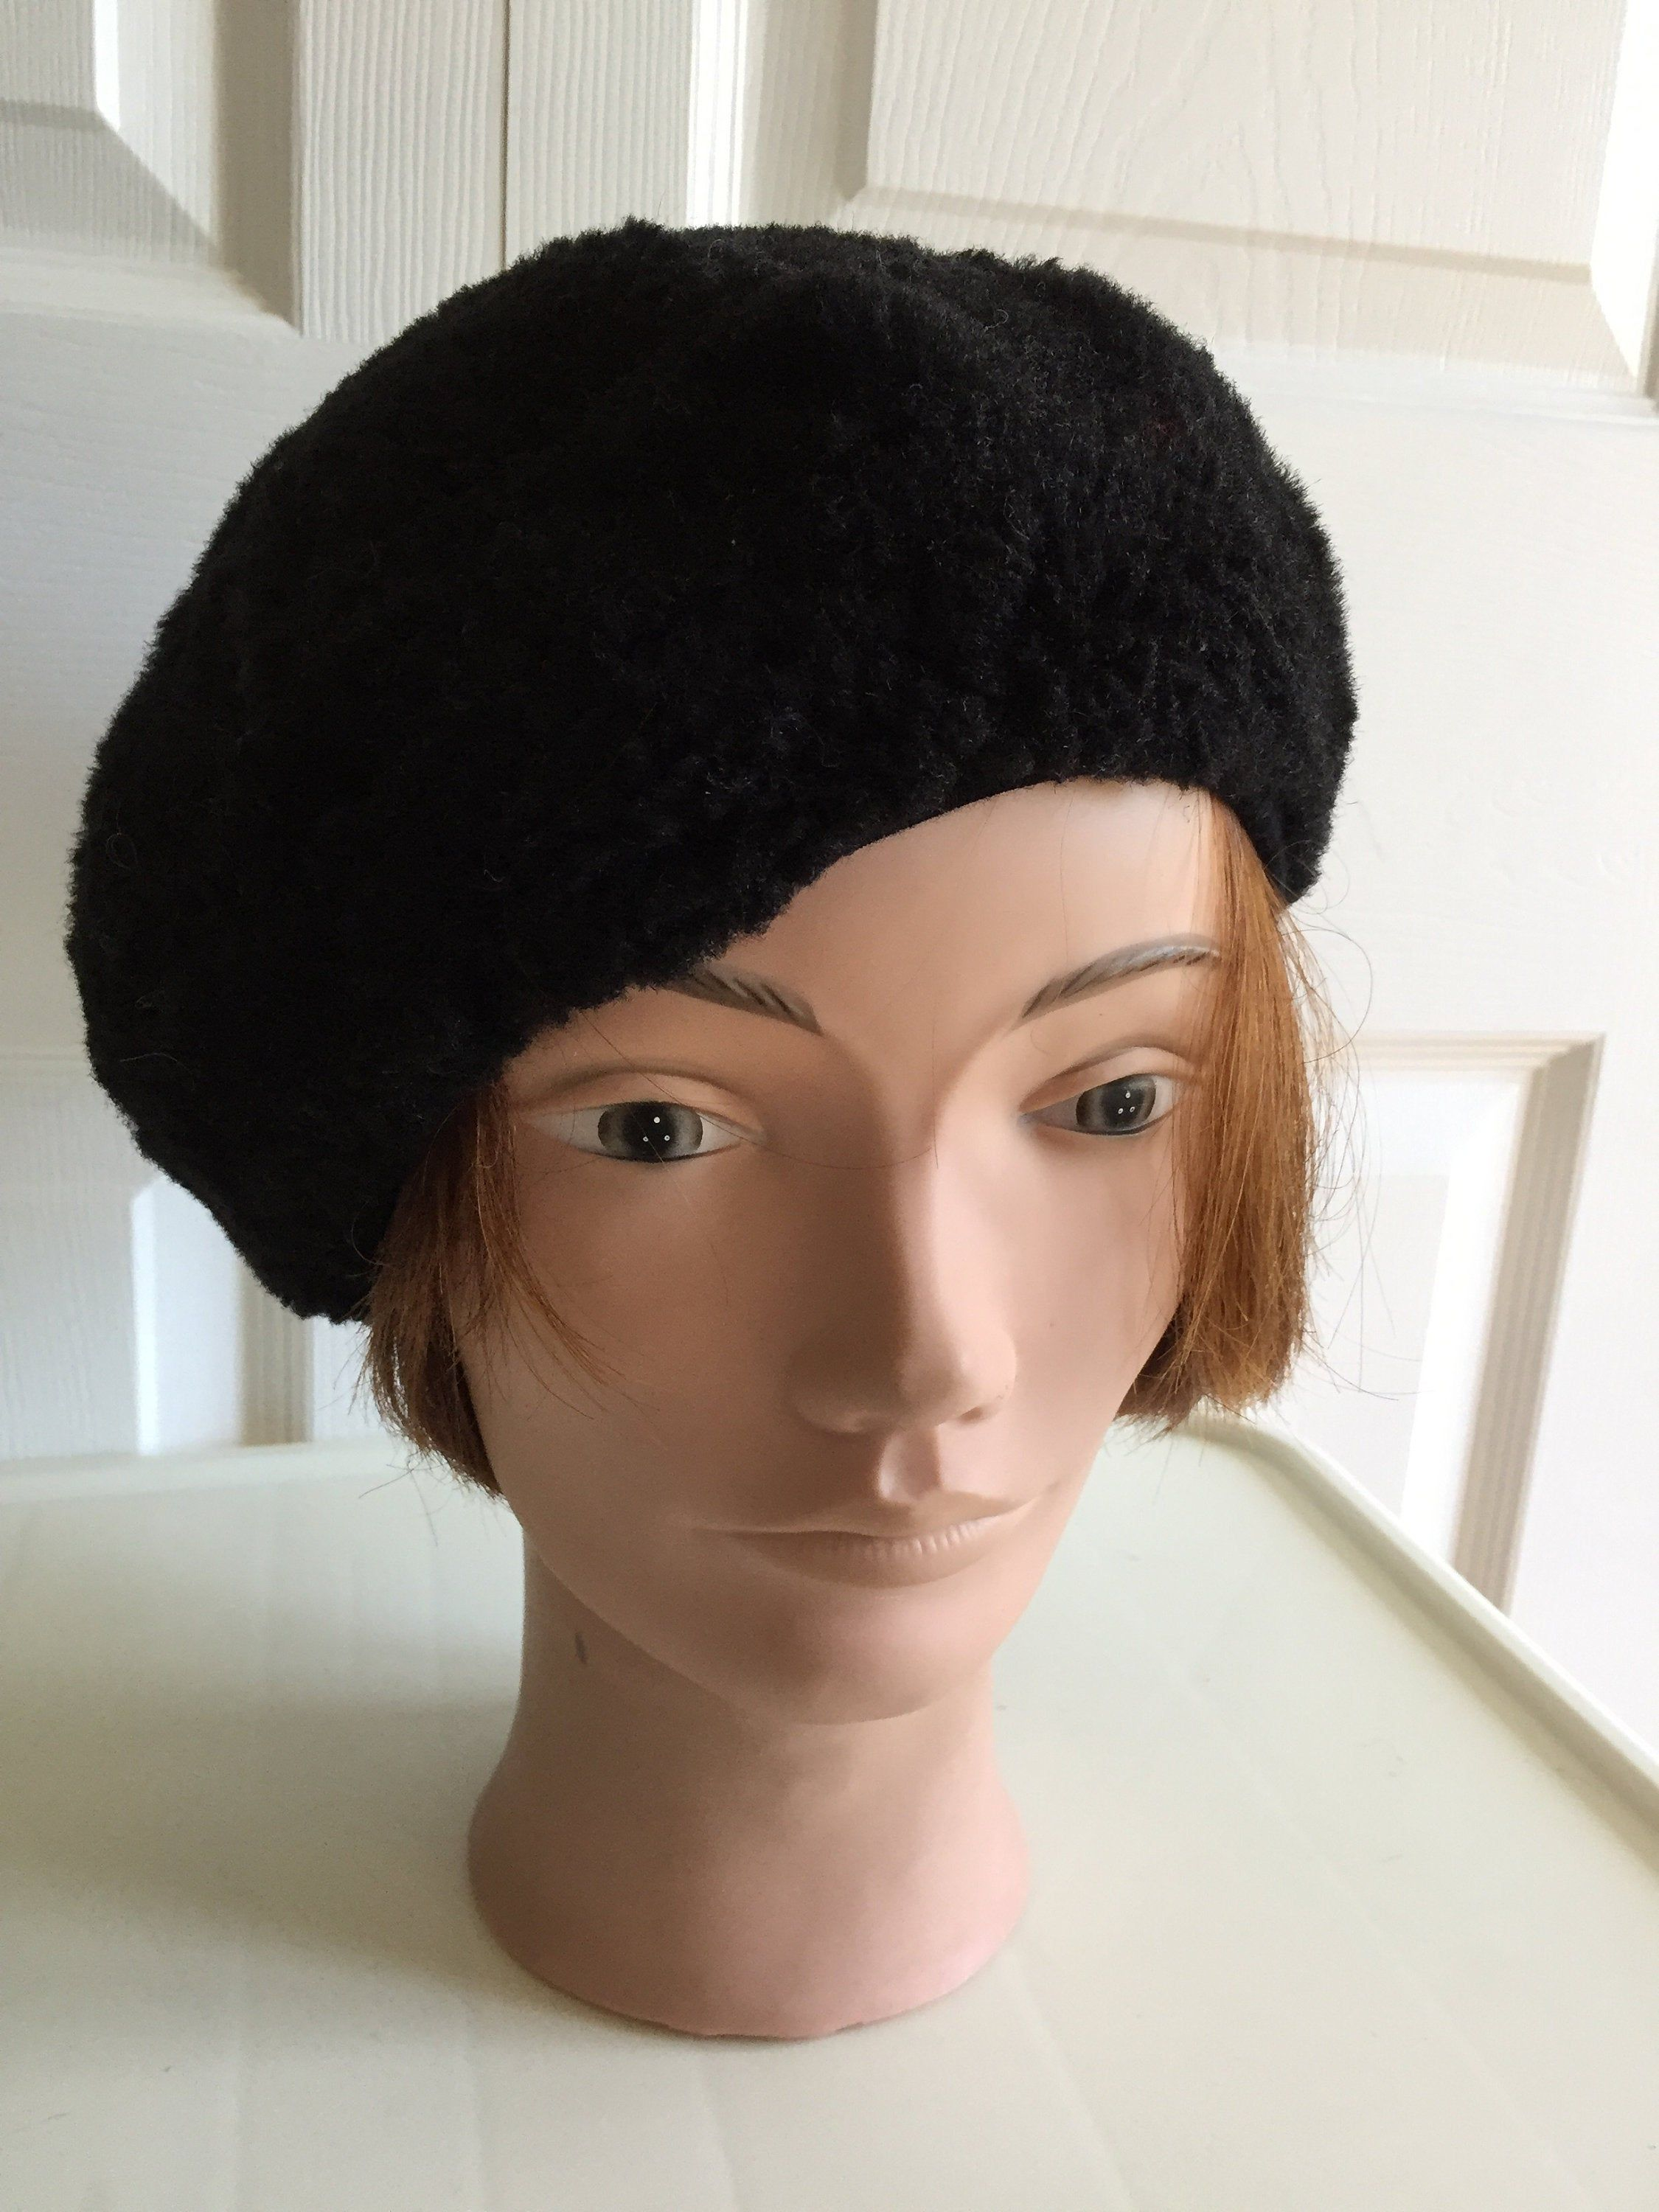 80s Black Acrylic Blend Beret Women Hat 10 Small Beatnik Look Vintage Hats For Women Black Acrylics Women